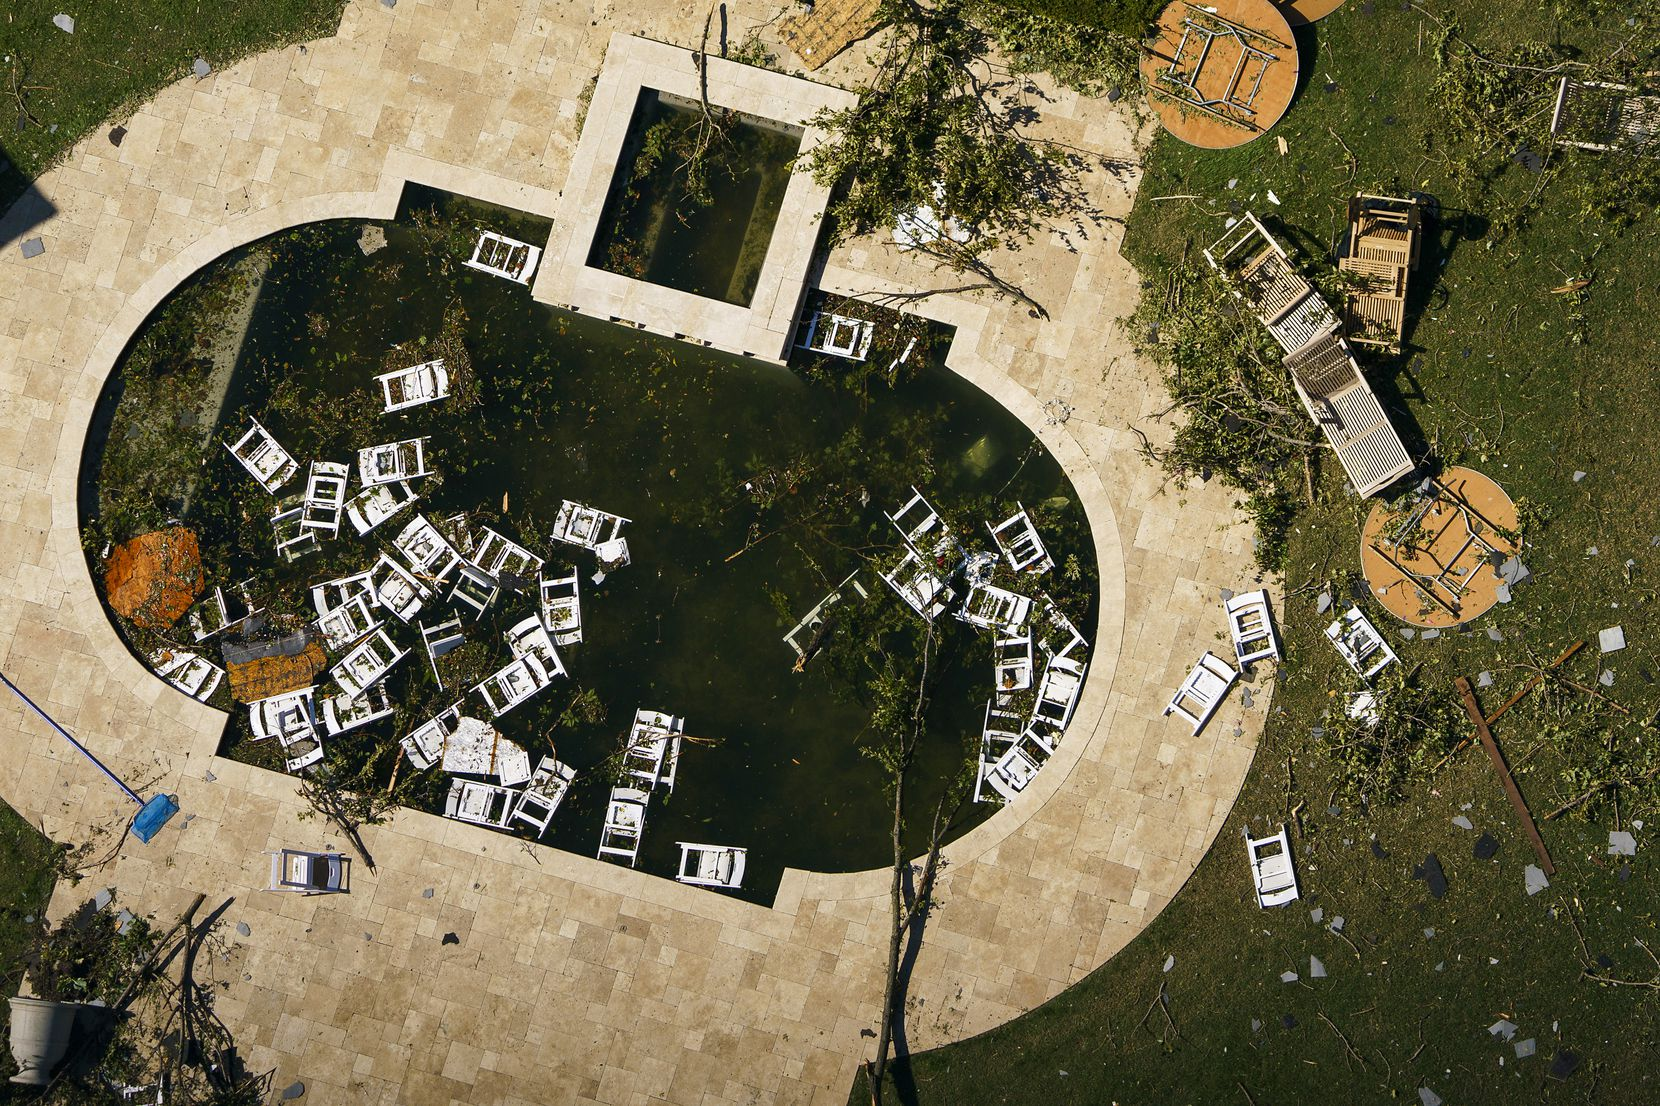 Chairs float in a backyard pool with debris from tornado damage near Walnut HIll Lane and Mash Lane on Monday, Oct. 21, 2019, in Dallas.